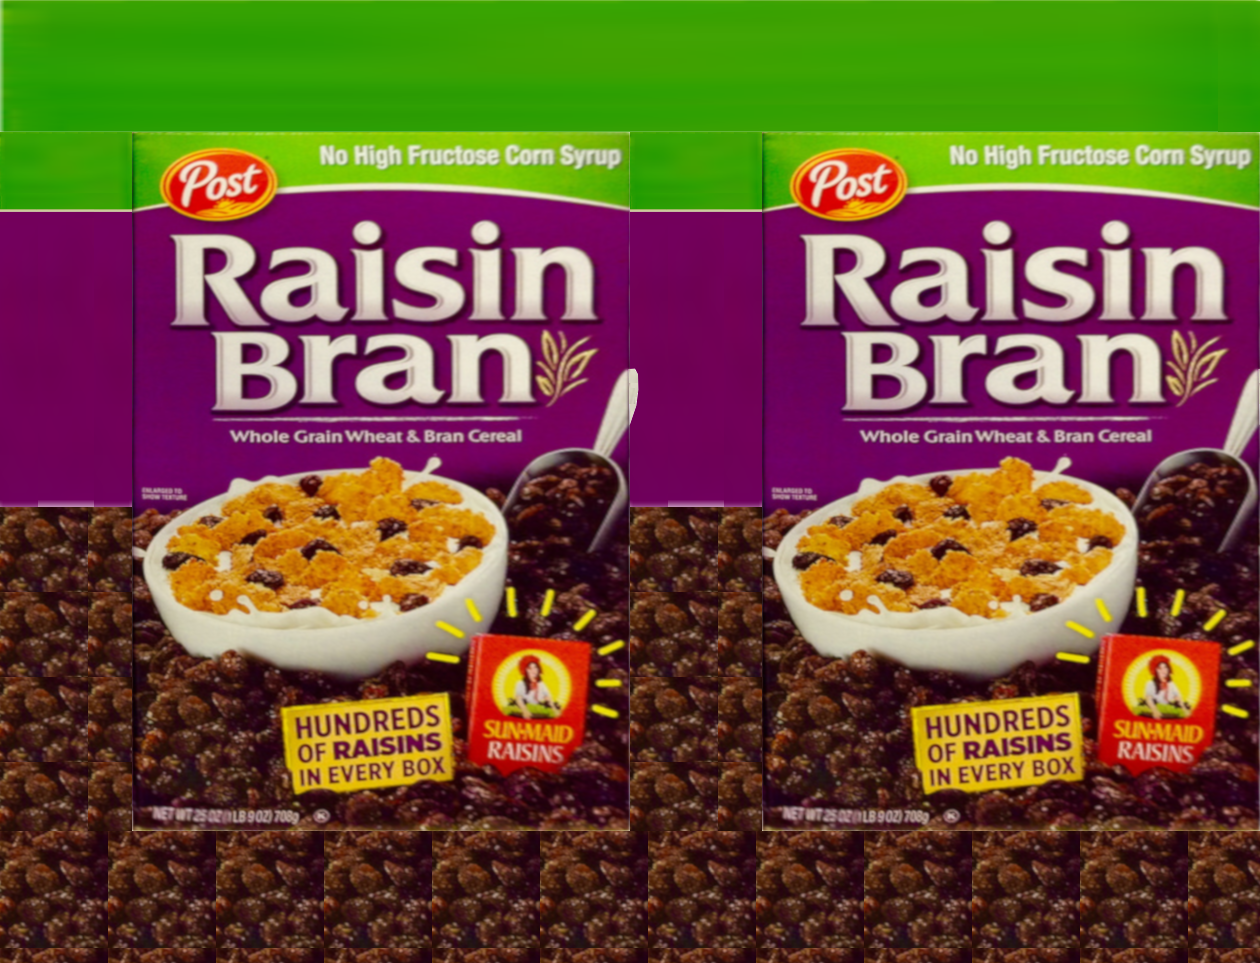 Collada/_RayonCereales/images/CerealesBox.png